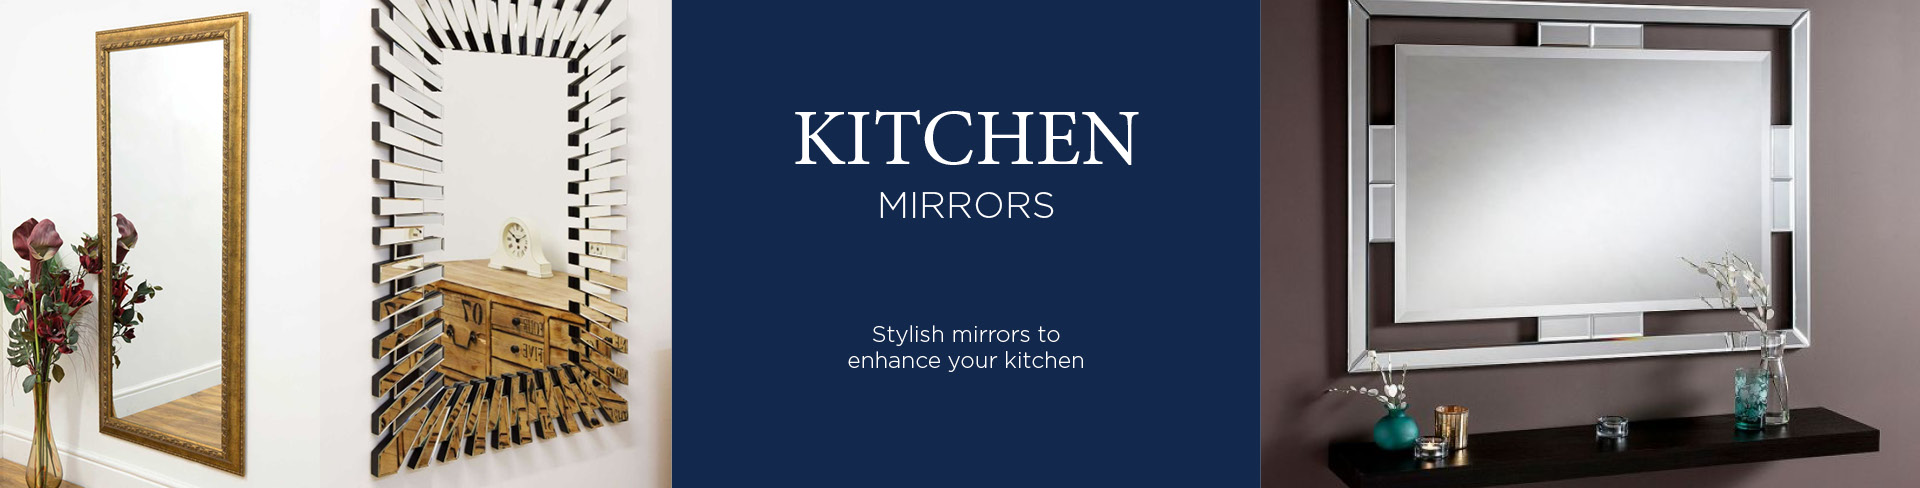 Kitchen Mirrors & Decorations